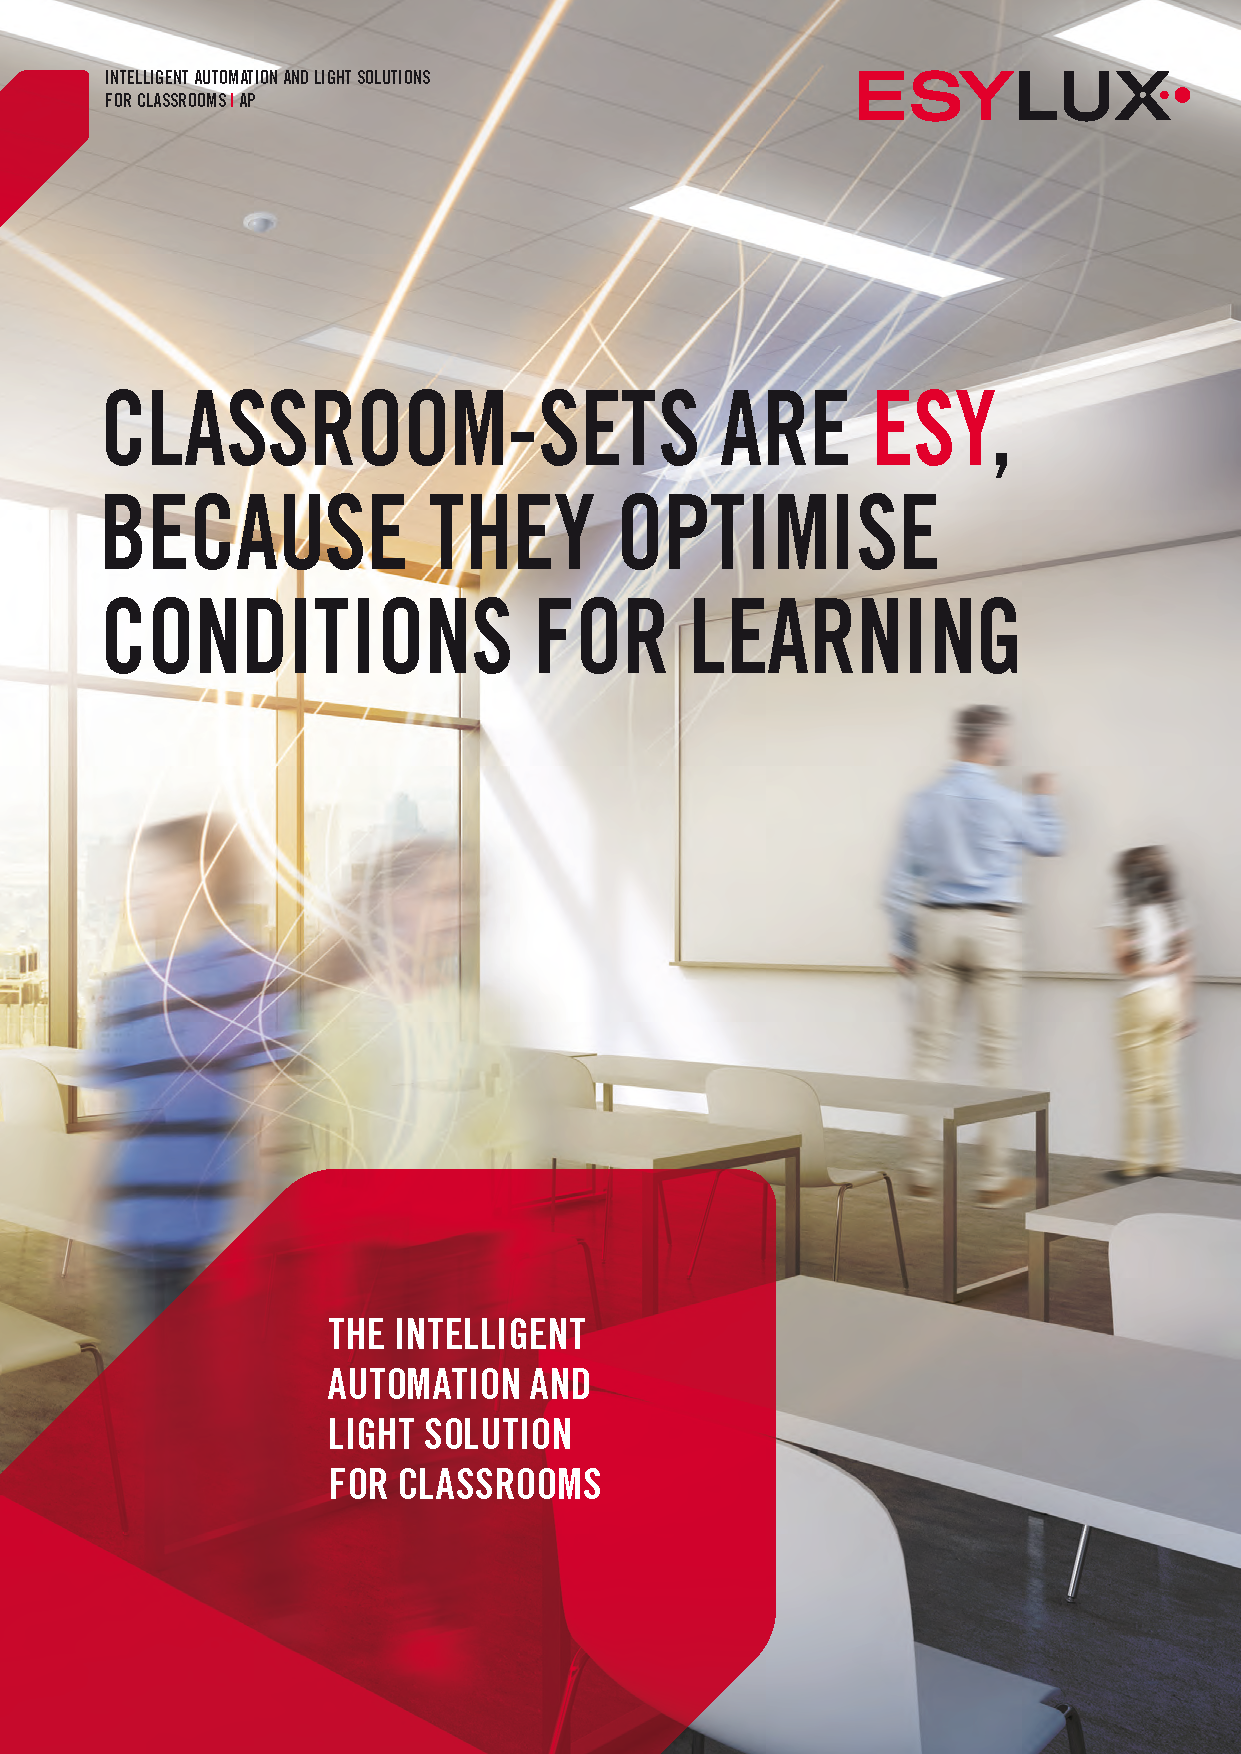 Esylux EDUCATION SOLUTIONS